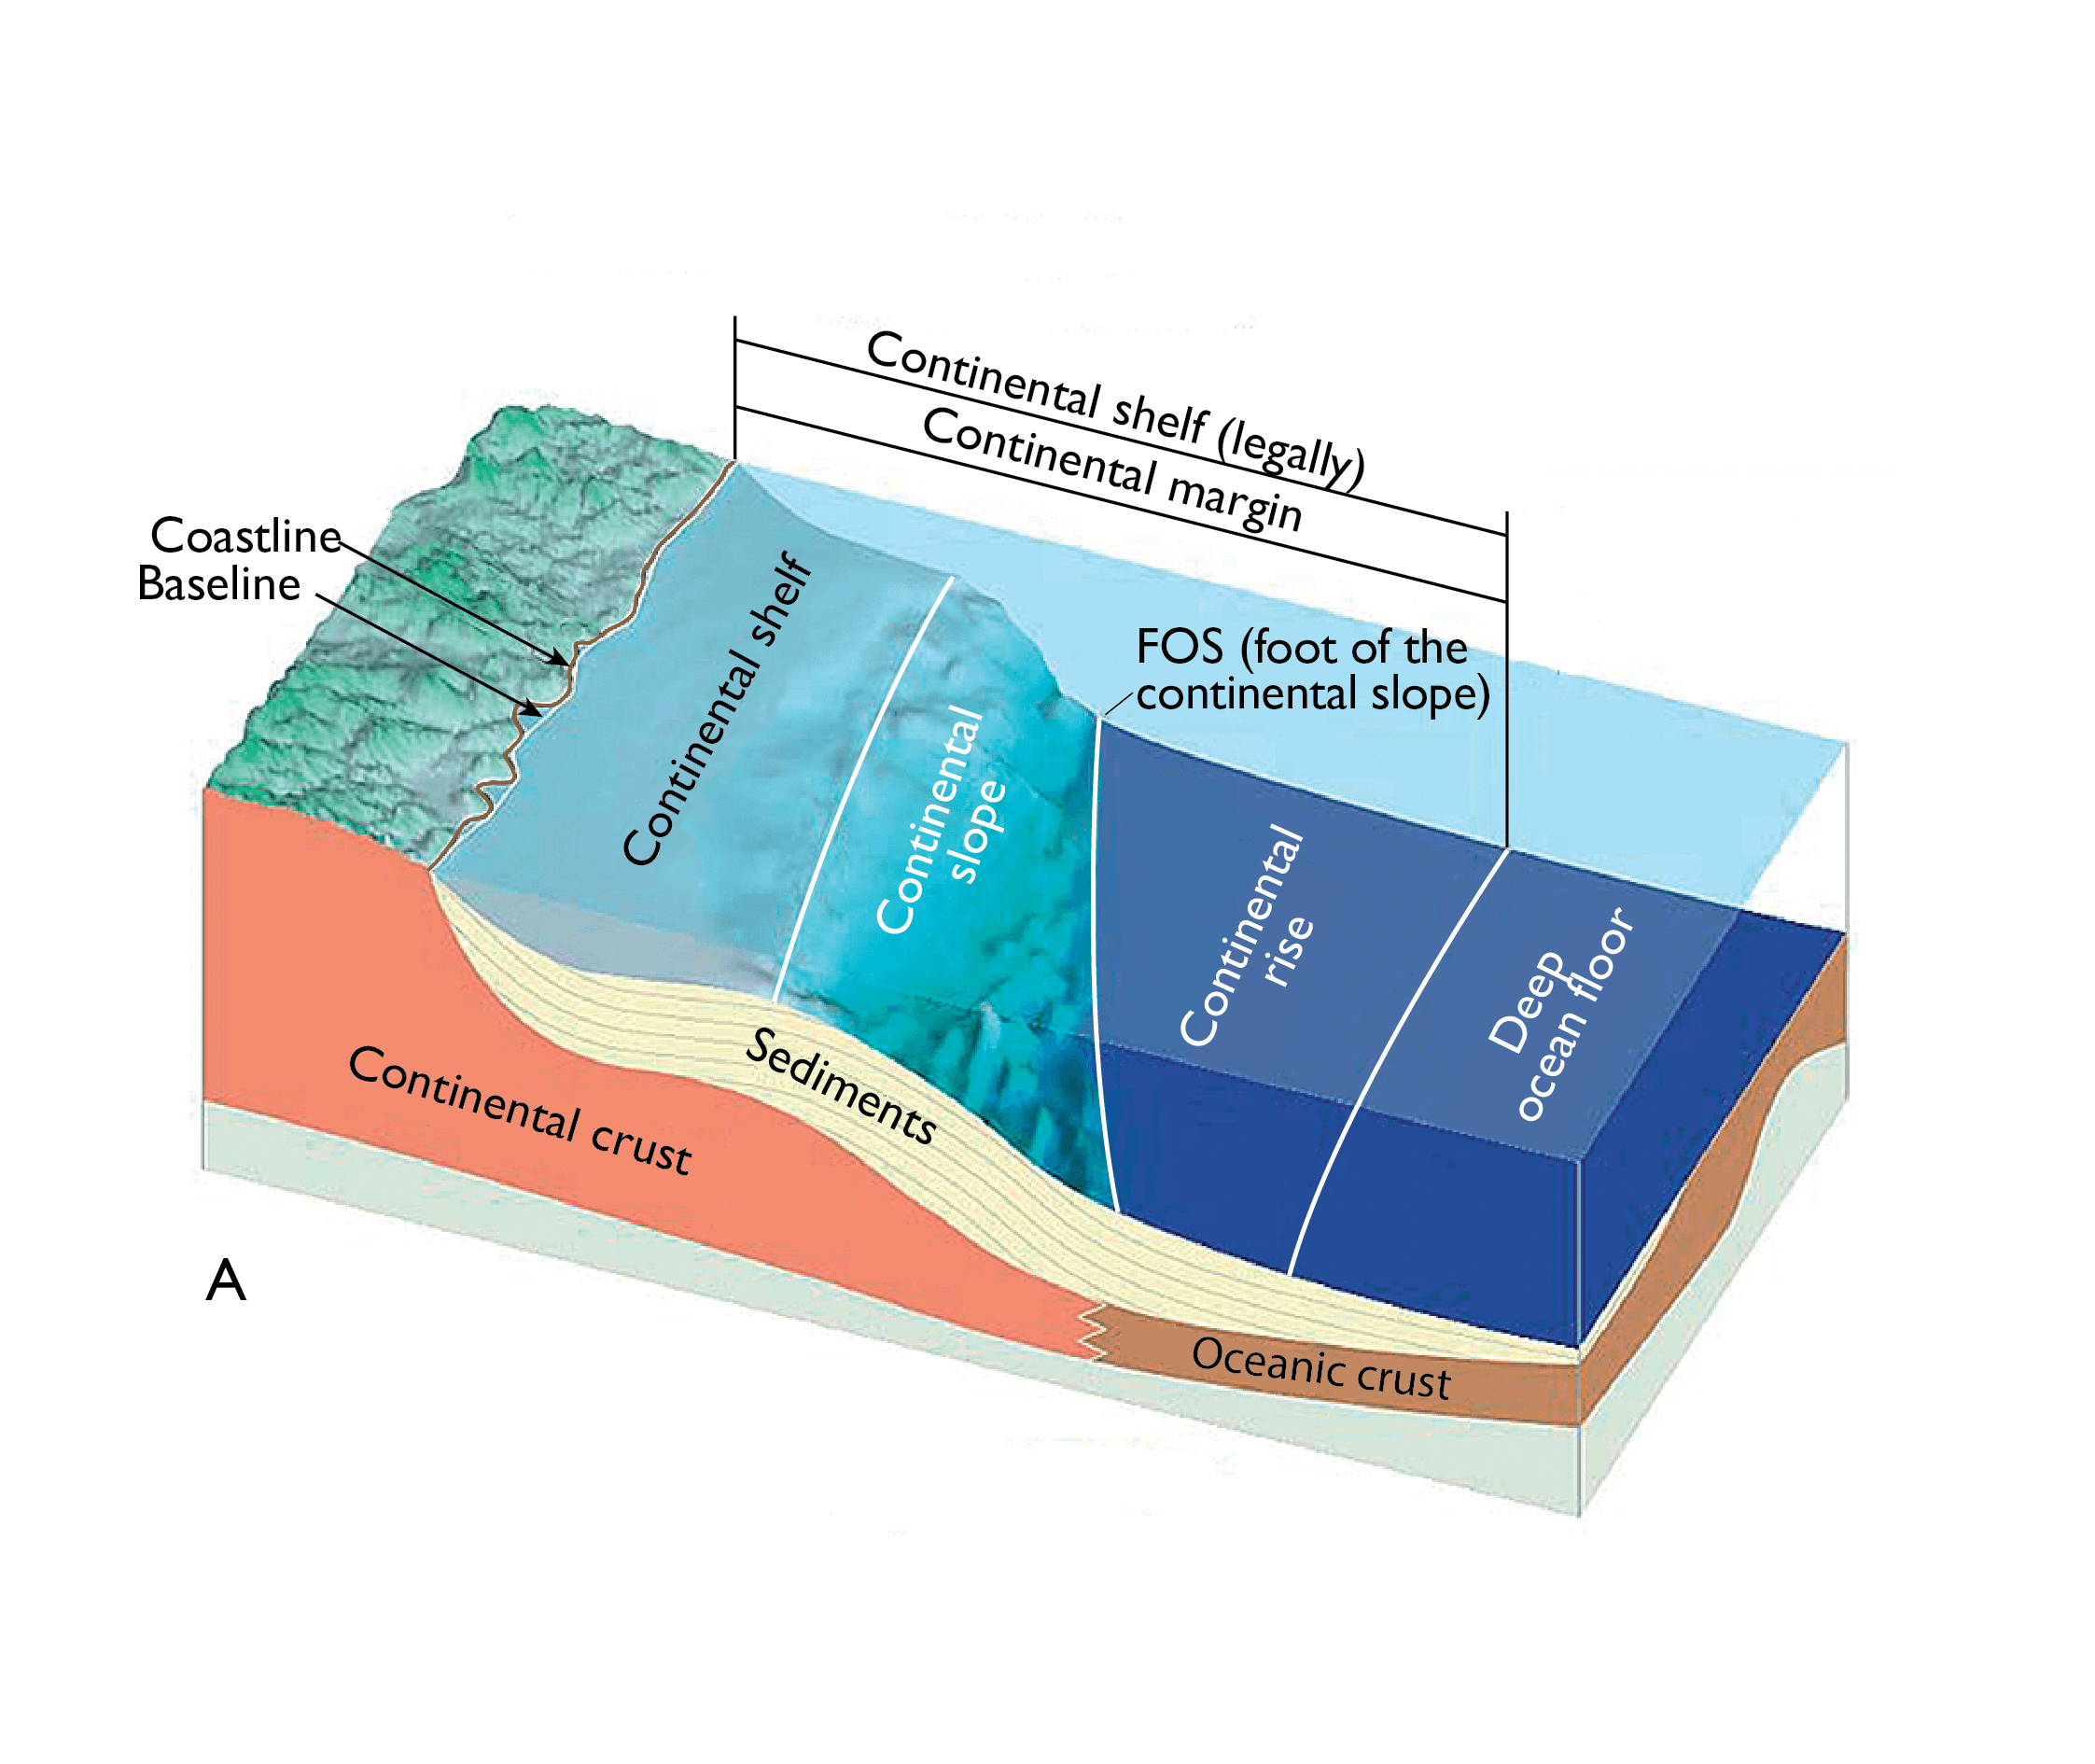 The figure shows a cross section of a type of continental margin that best corresponds with the conditions in the Atlantic Ocean.